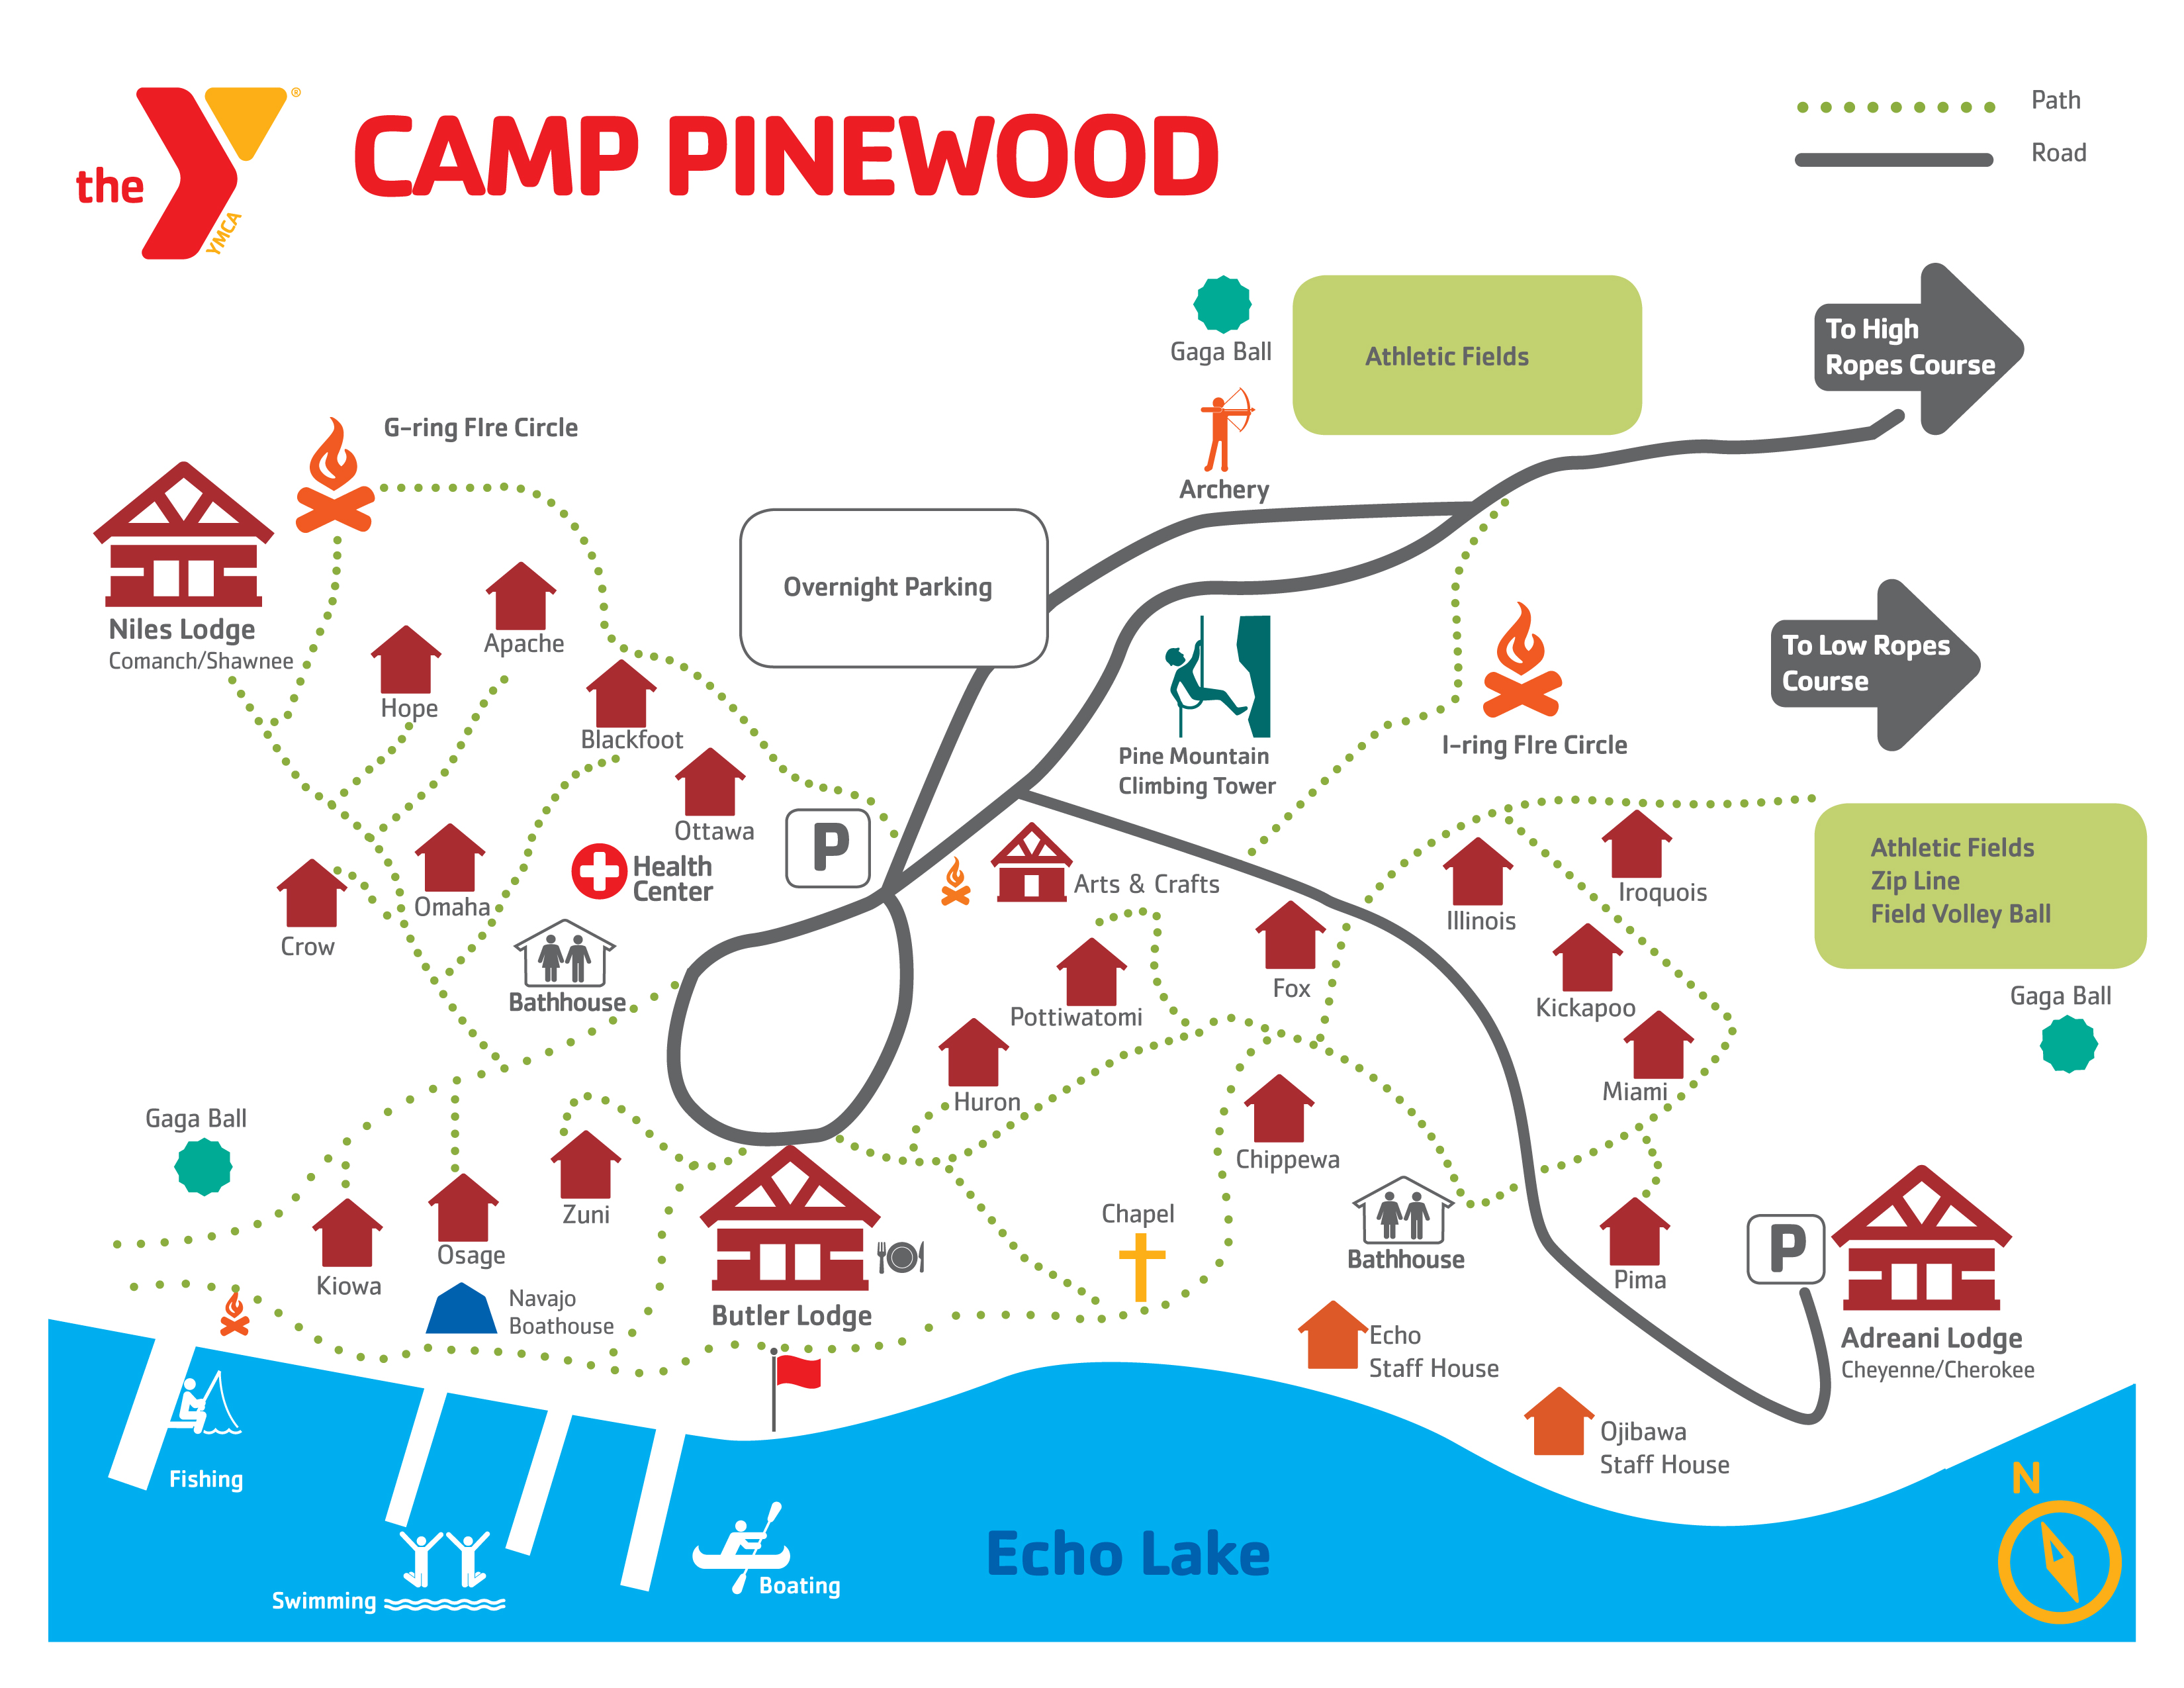 YMCA Camp Pinewood Ymca Map on little league map, boy scout council map, lake james north carolina topographic map, panera bread map, sams club map, elks lodges map, holiday inn map, lions club map, con edison map,